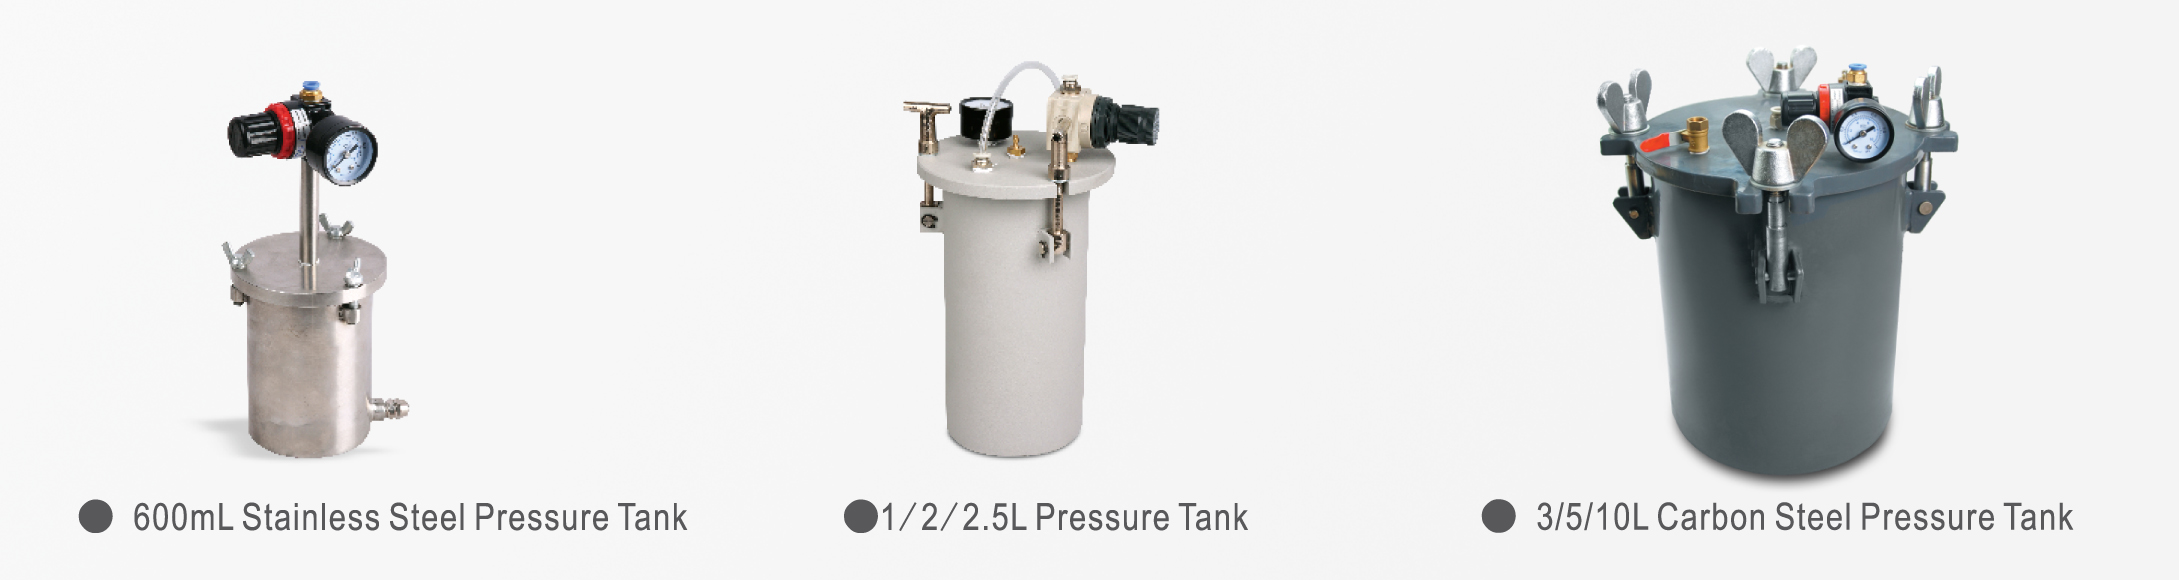 DispensingPressureTanks.jpg